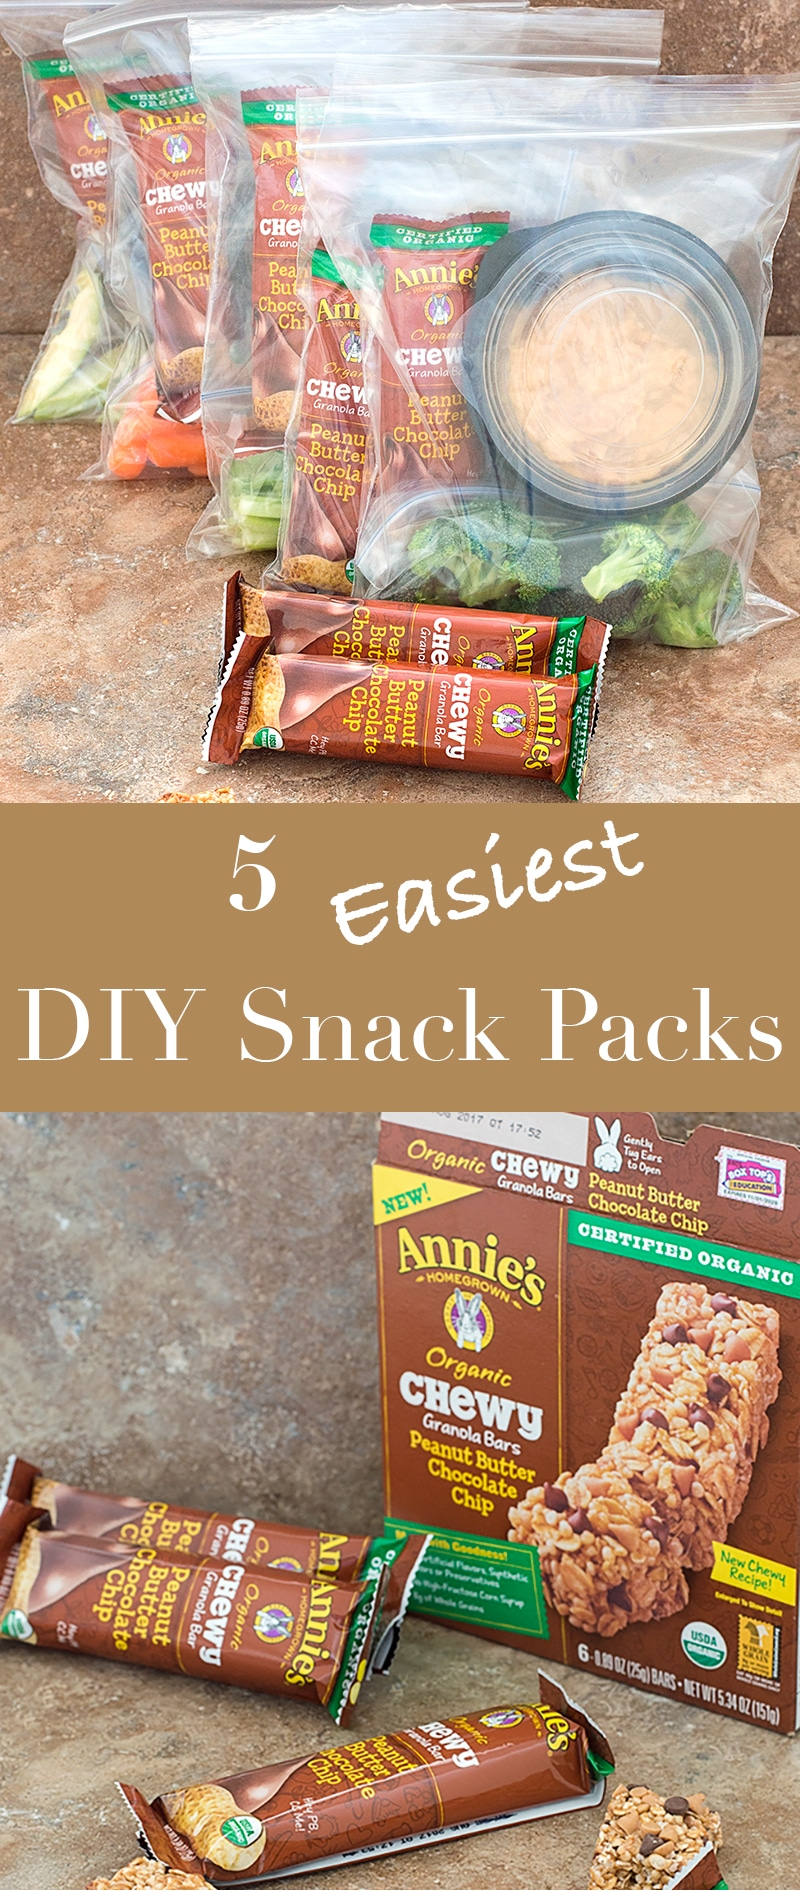 Snacking right is so easy. This DIY Snack Pack takes only 10 minutes to prep and has fresh veggies #ad #organicforeverybunny @annieshomegrown @walmart